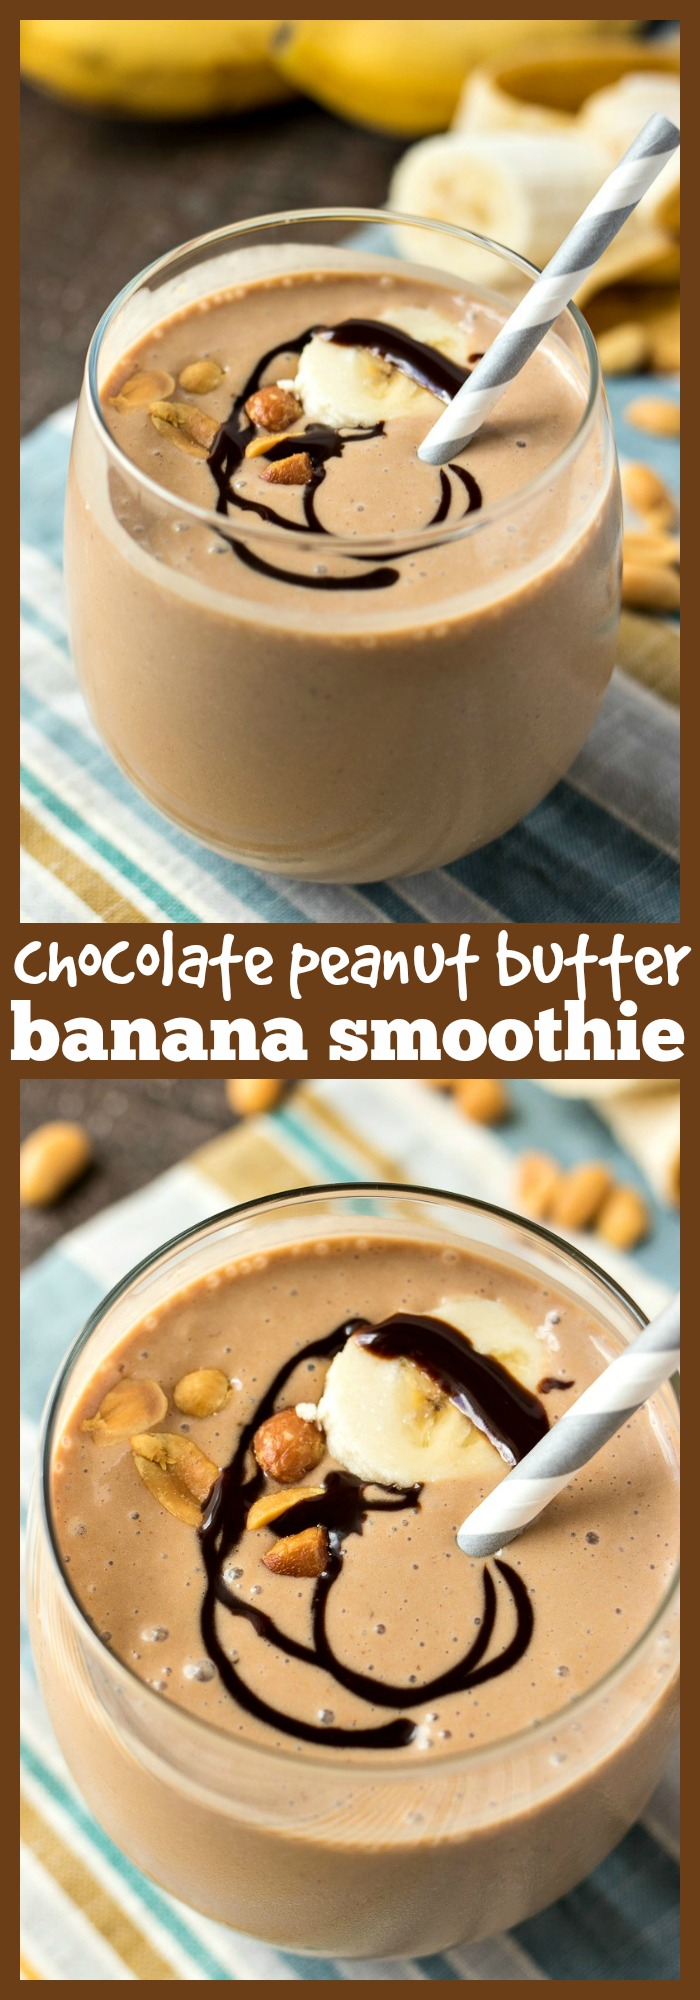 Chocolate Peanut Butter Banana Smoothie photo collage